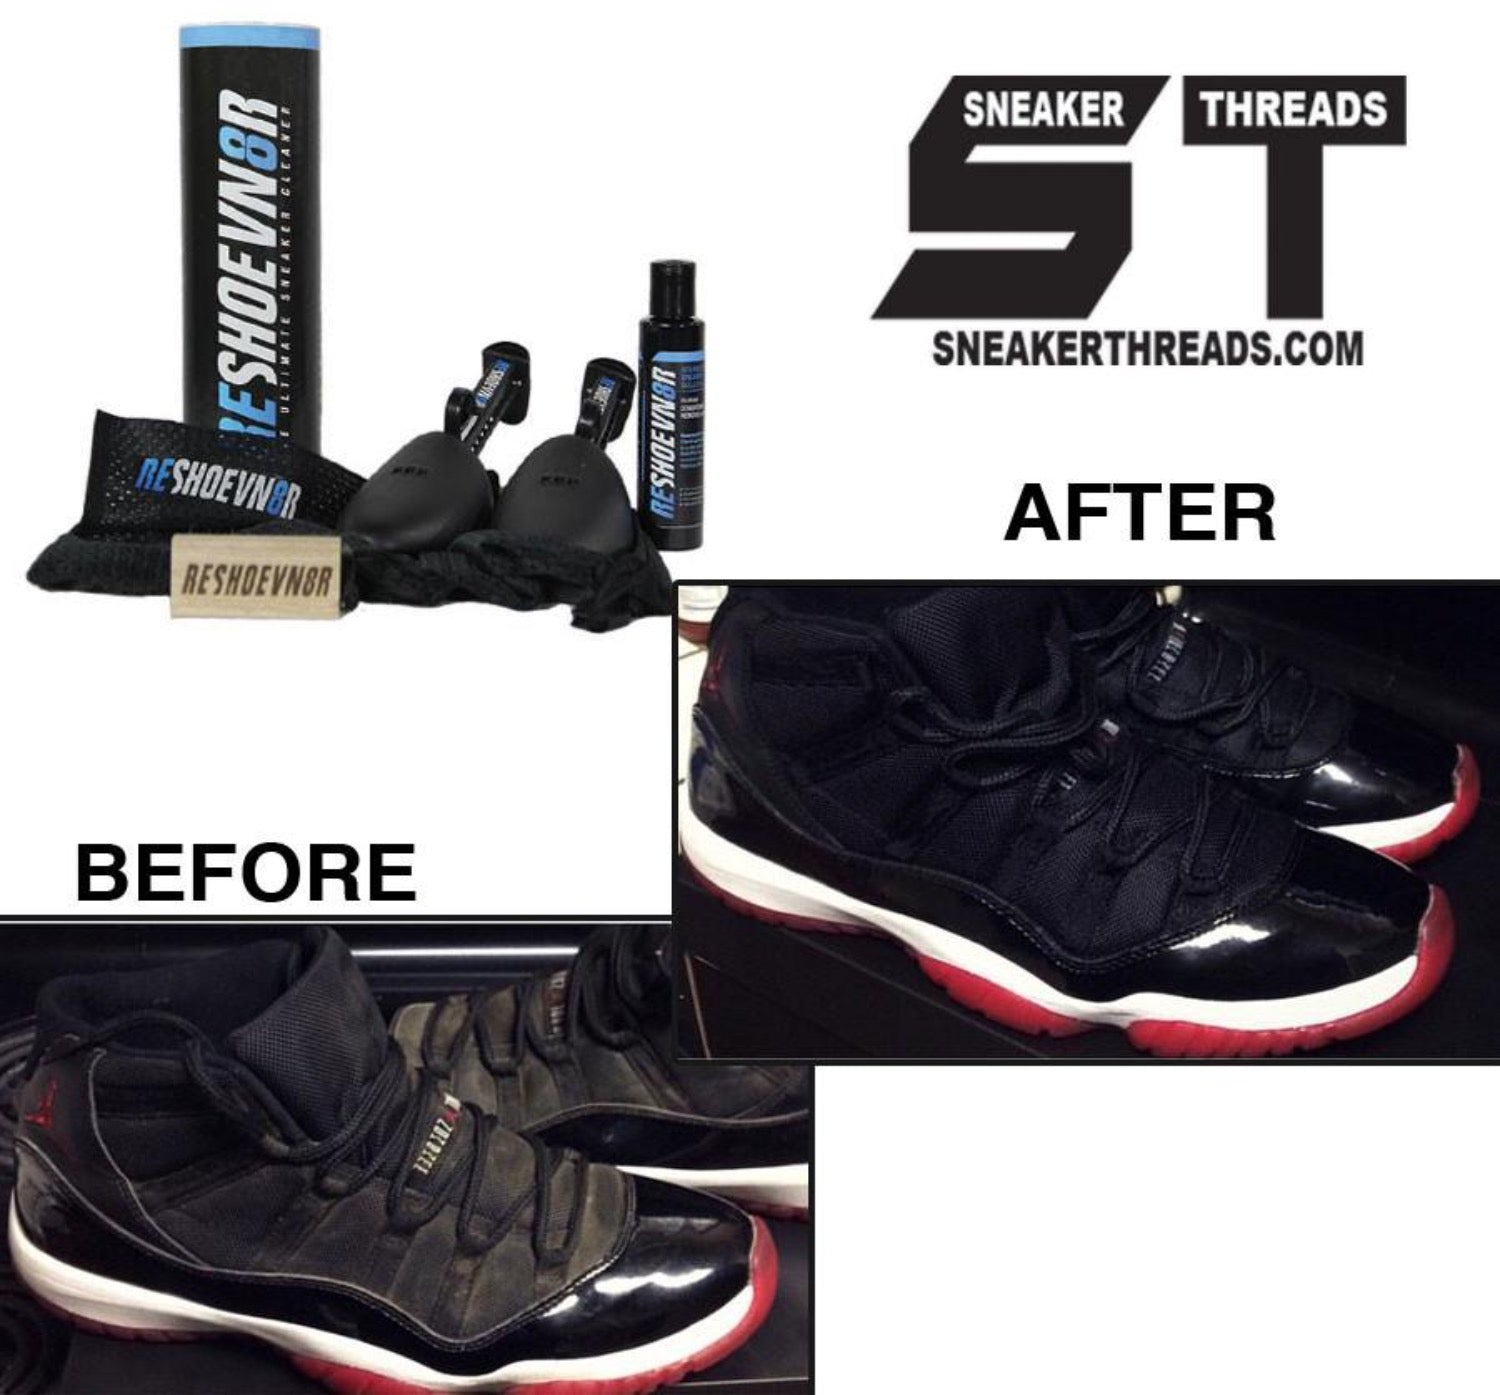 Premium shoe cleaning kit for Nike Jordan sneaker shoe cleaner.